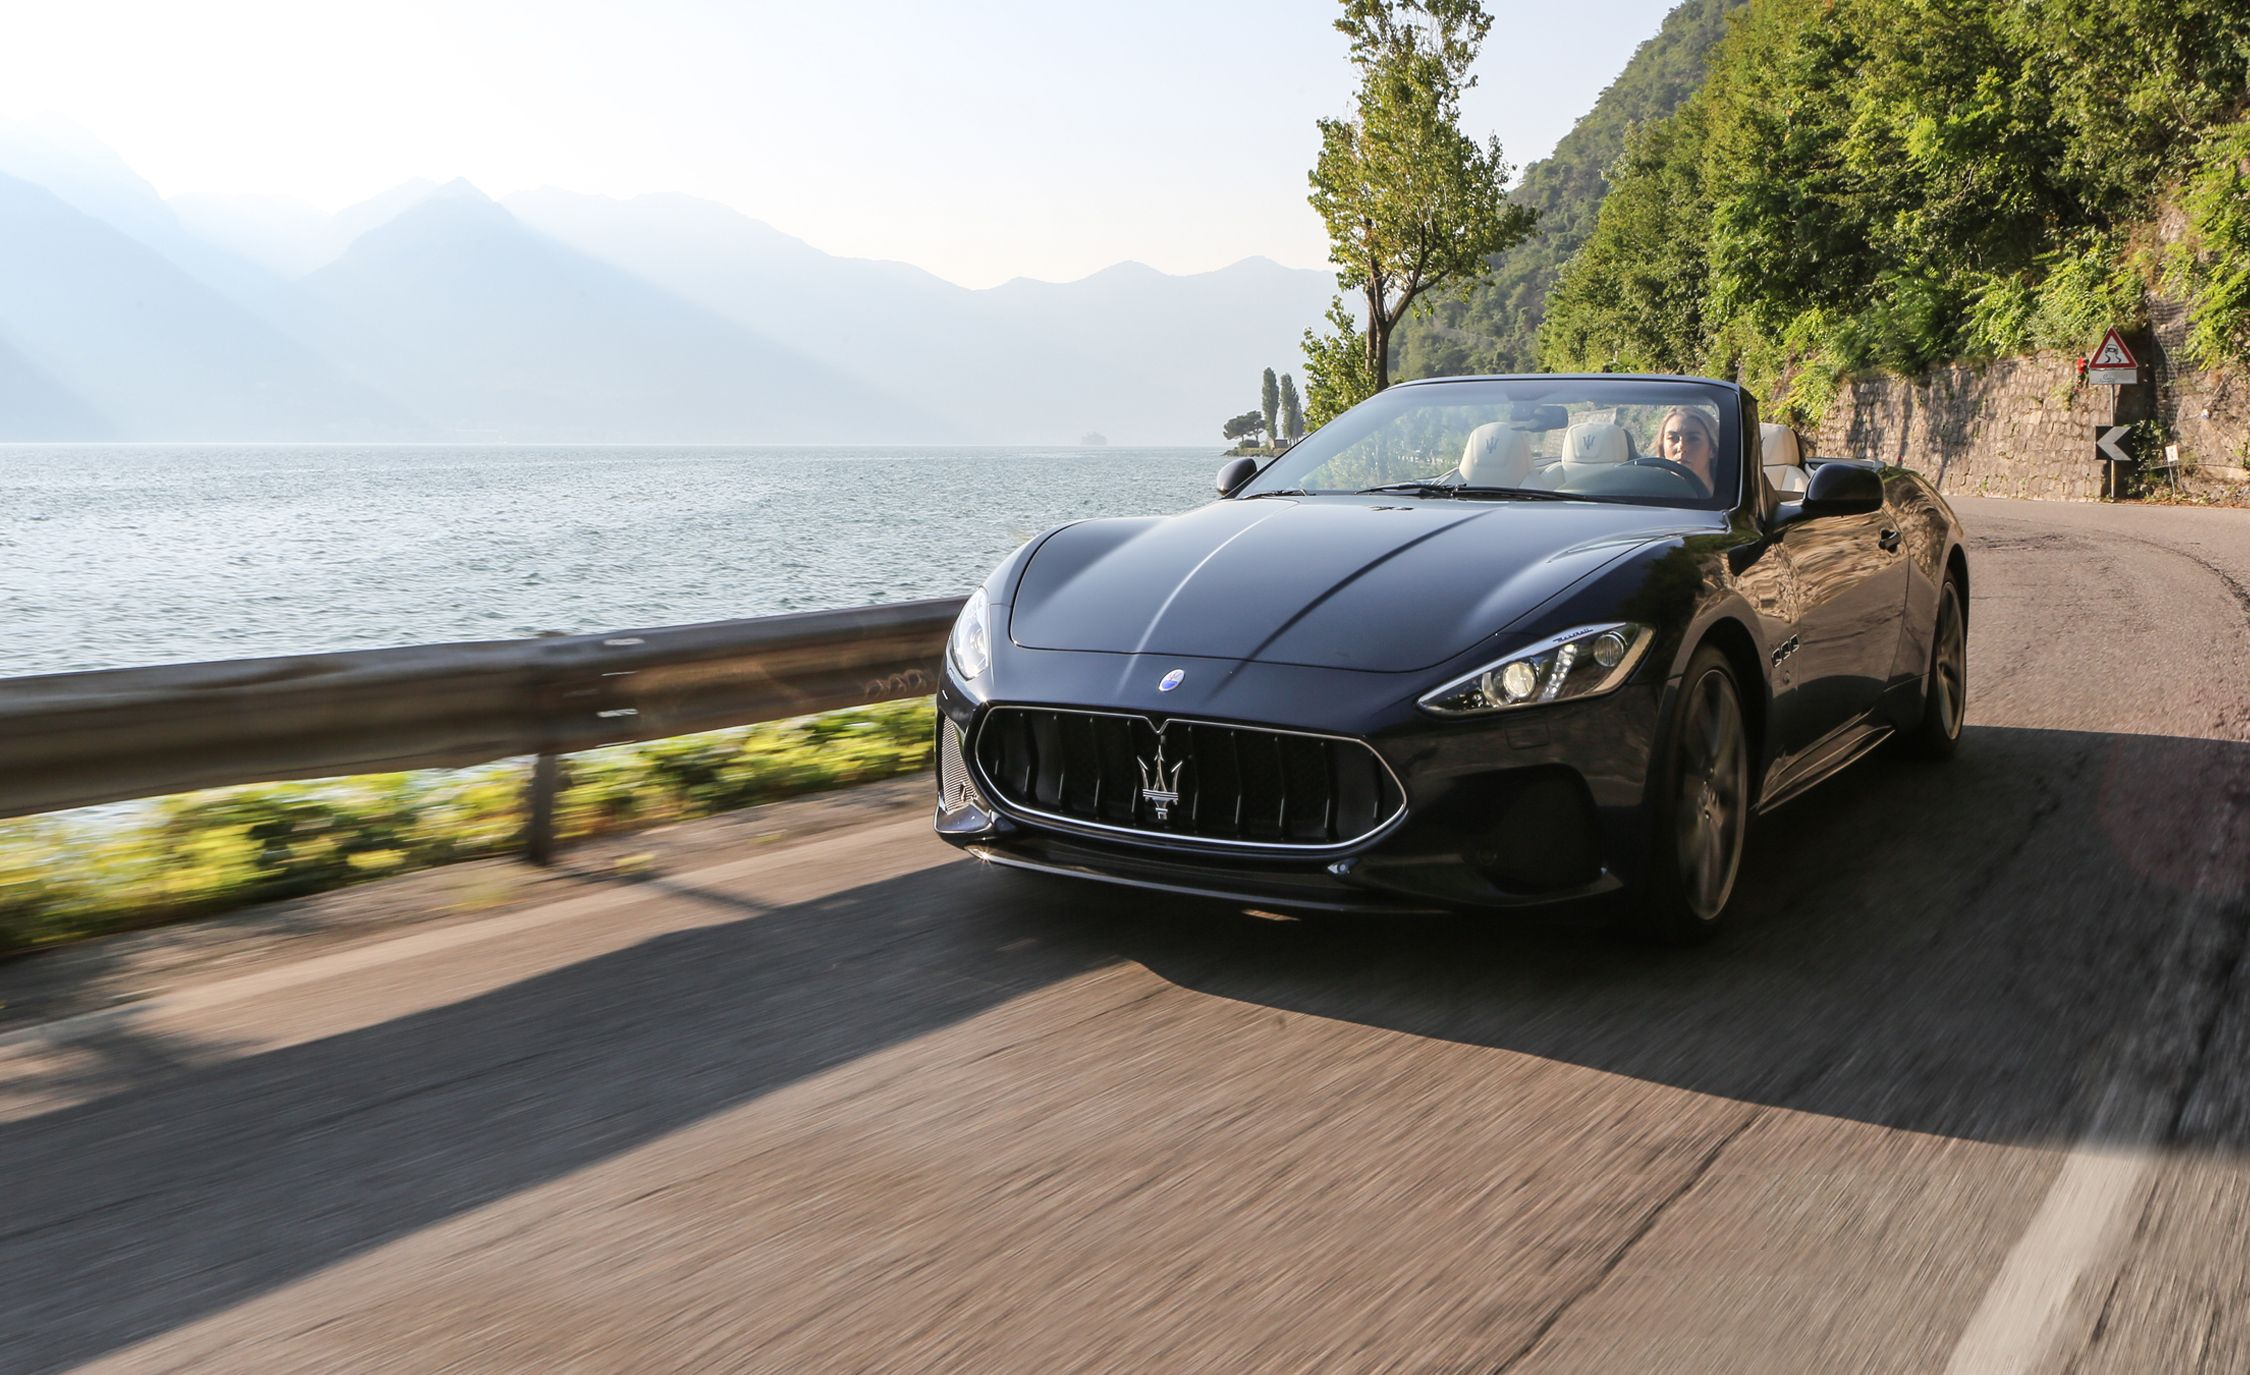 2019 maserati granturismo reviews | maserati granturismo price